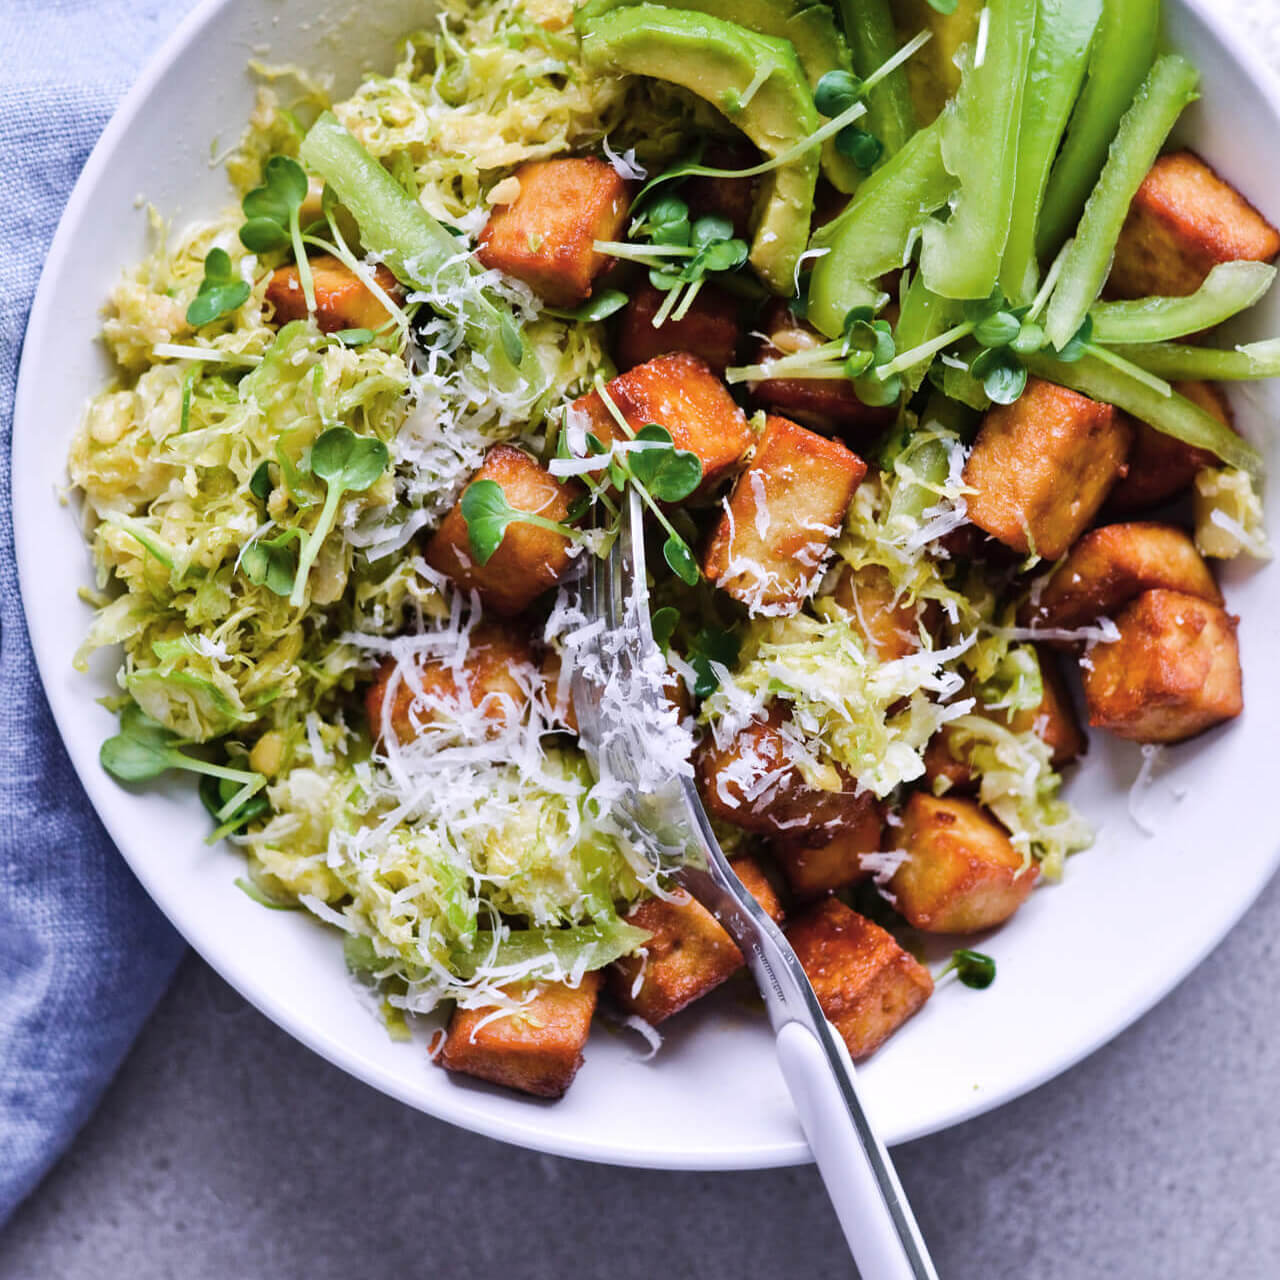 Recipe for Crispy tofu shaved brussels sprout salad with honey mustard dressing, pine nuts and Parmesan. Easy to make, very filling and vegetarian meal. | mitzyathome.com